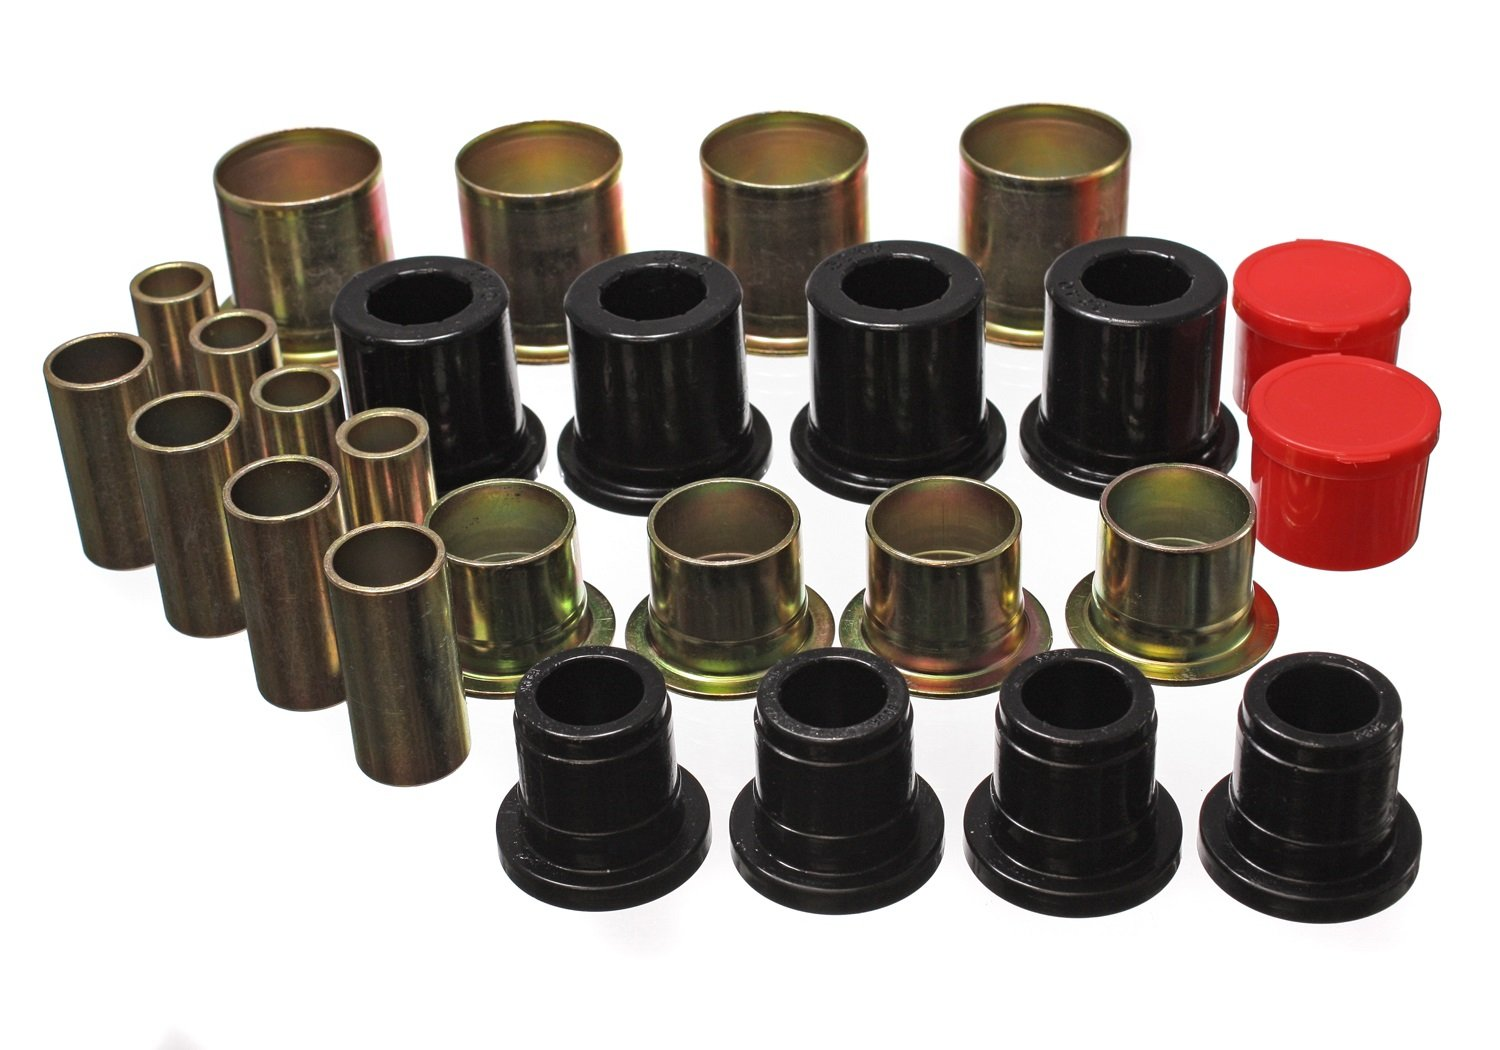 Energy Suspension ENE-3.3161G Lenkerkabelbuchsen-Set von Energy Suspension